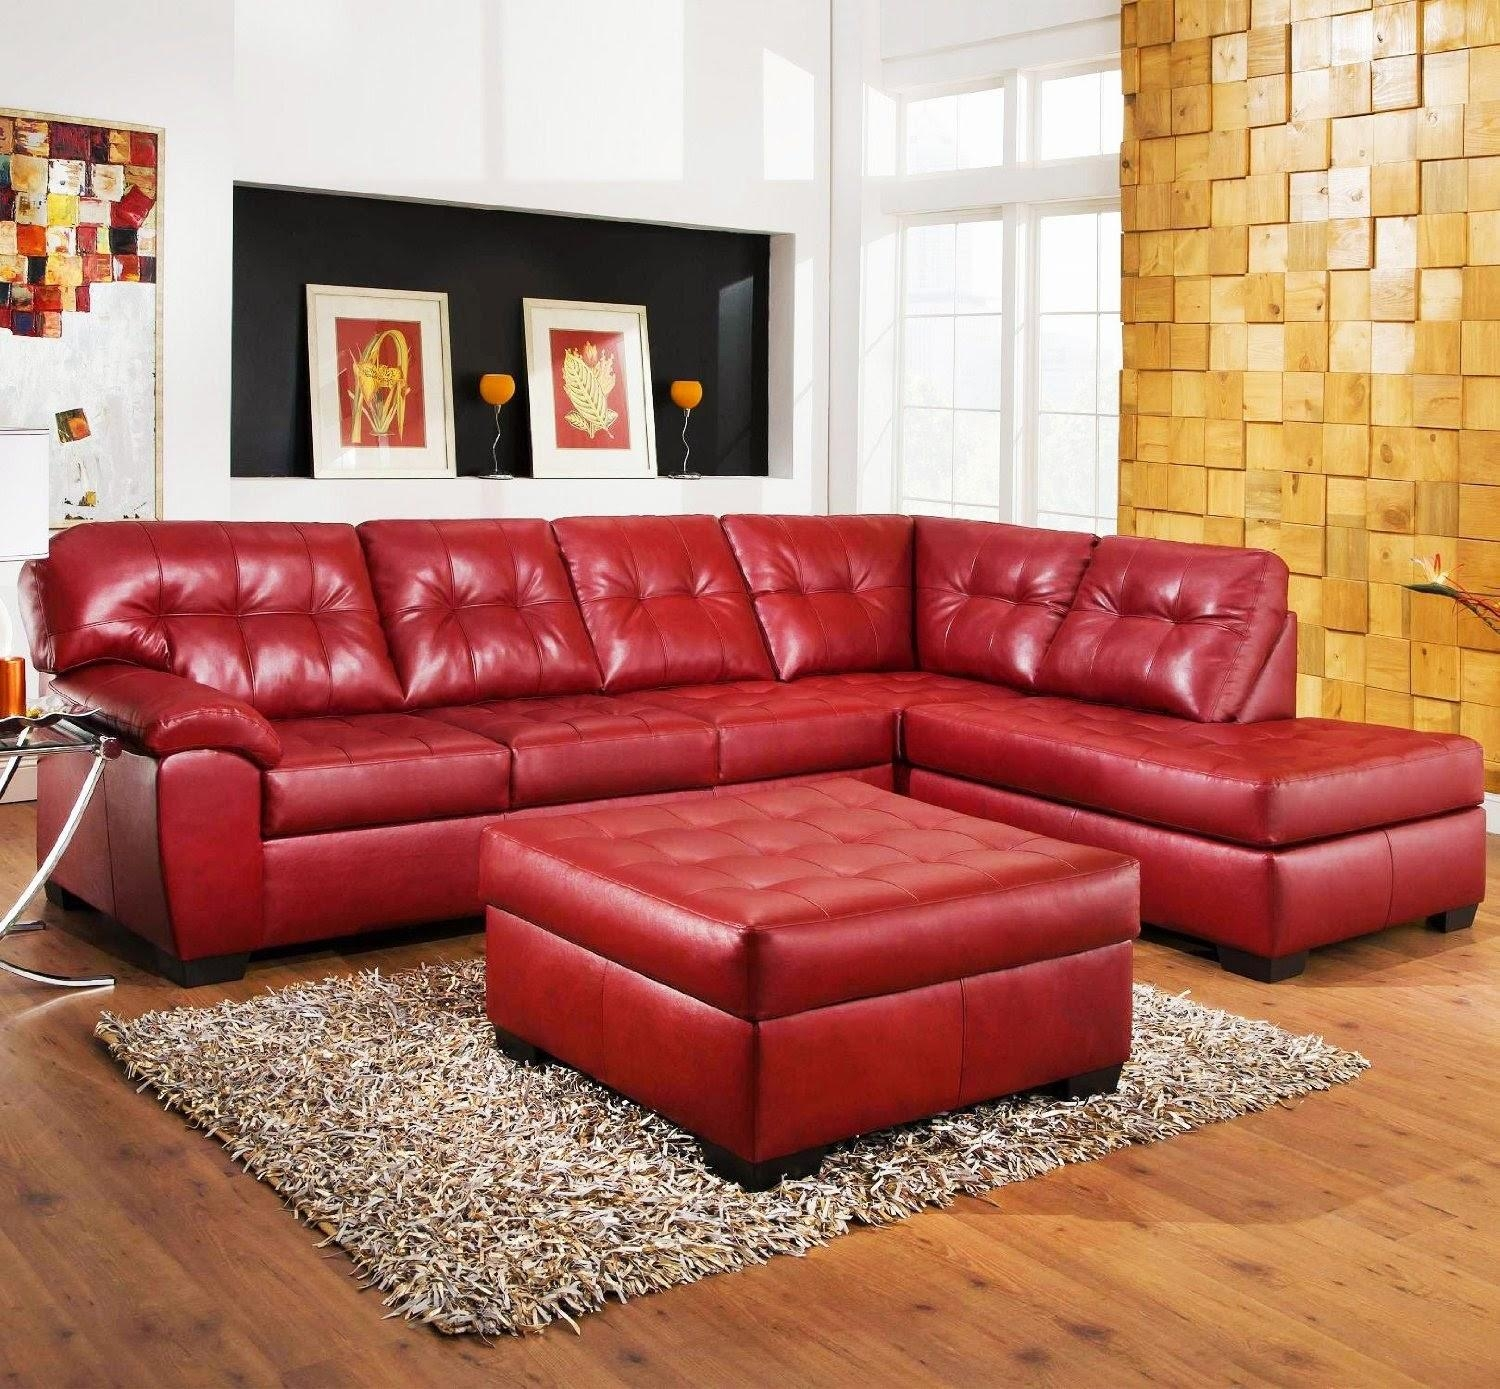 Red Sectional Sleeper Sofa – Tourdecarroll Throughout Red Sectional Sleeper Sofas (View 3 of 22)